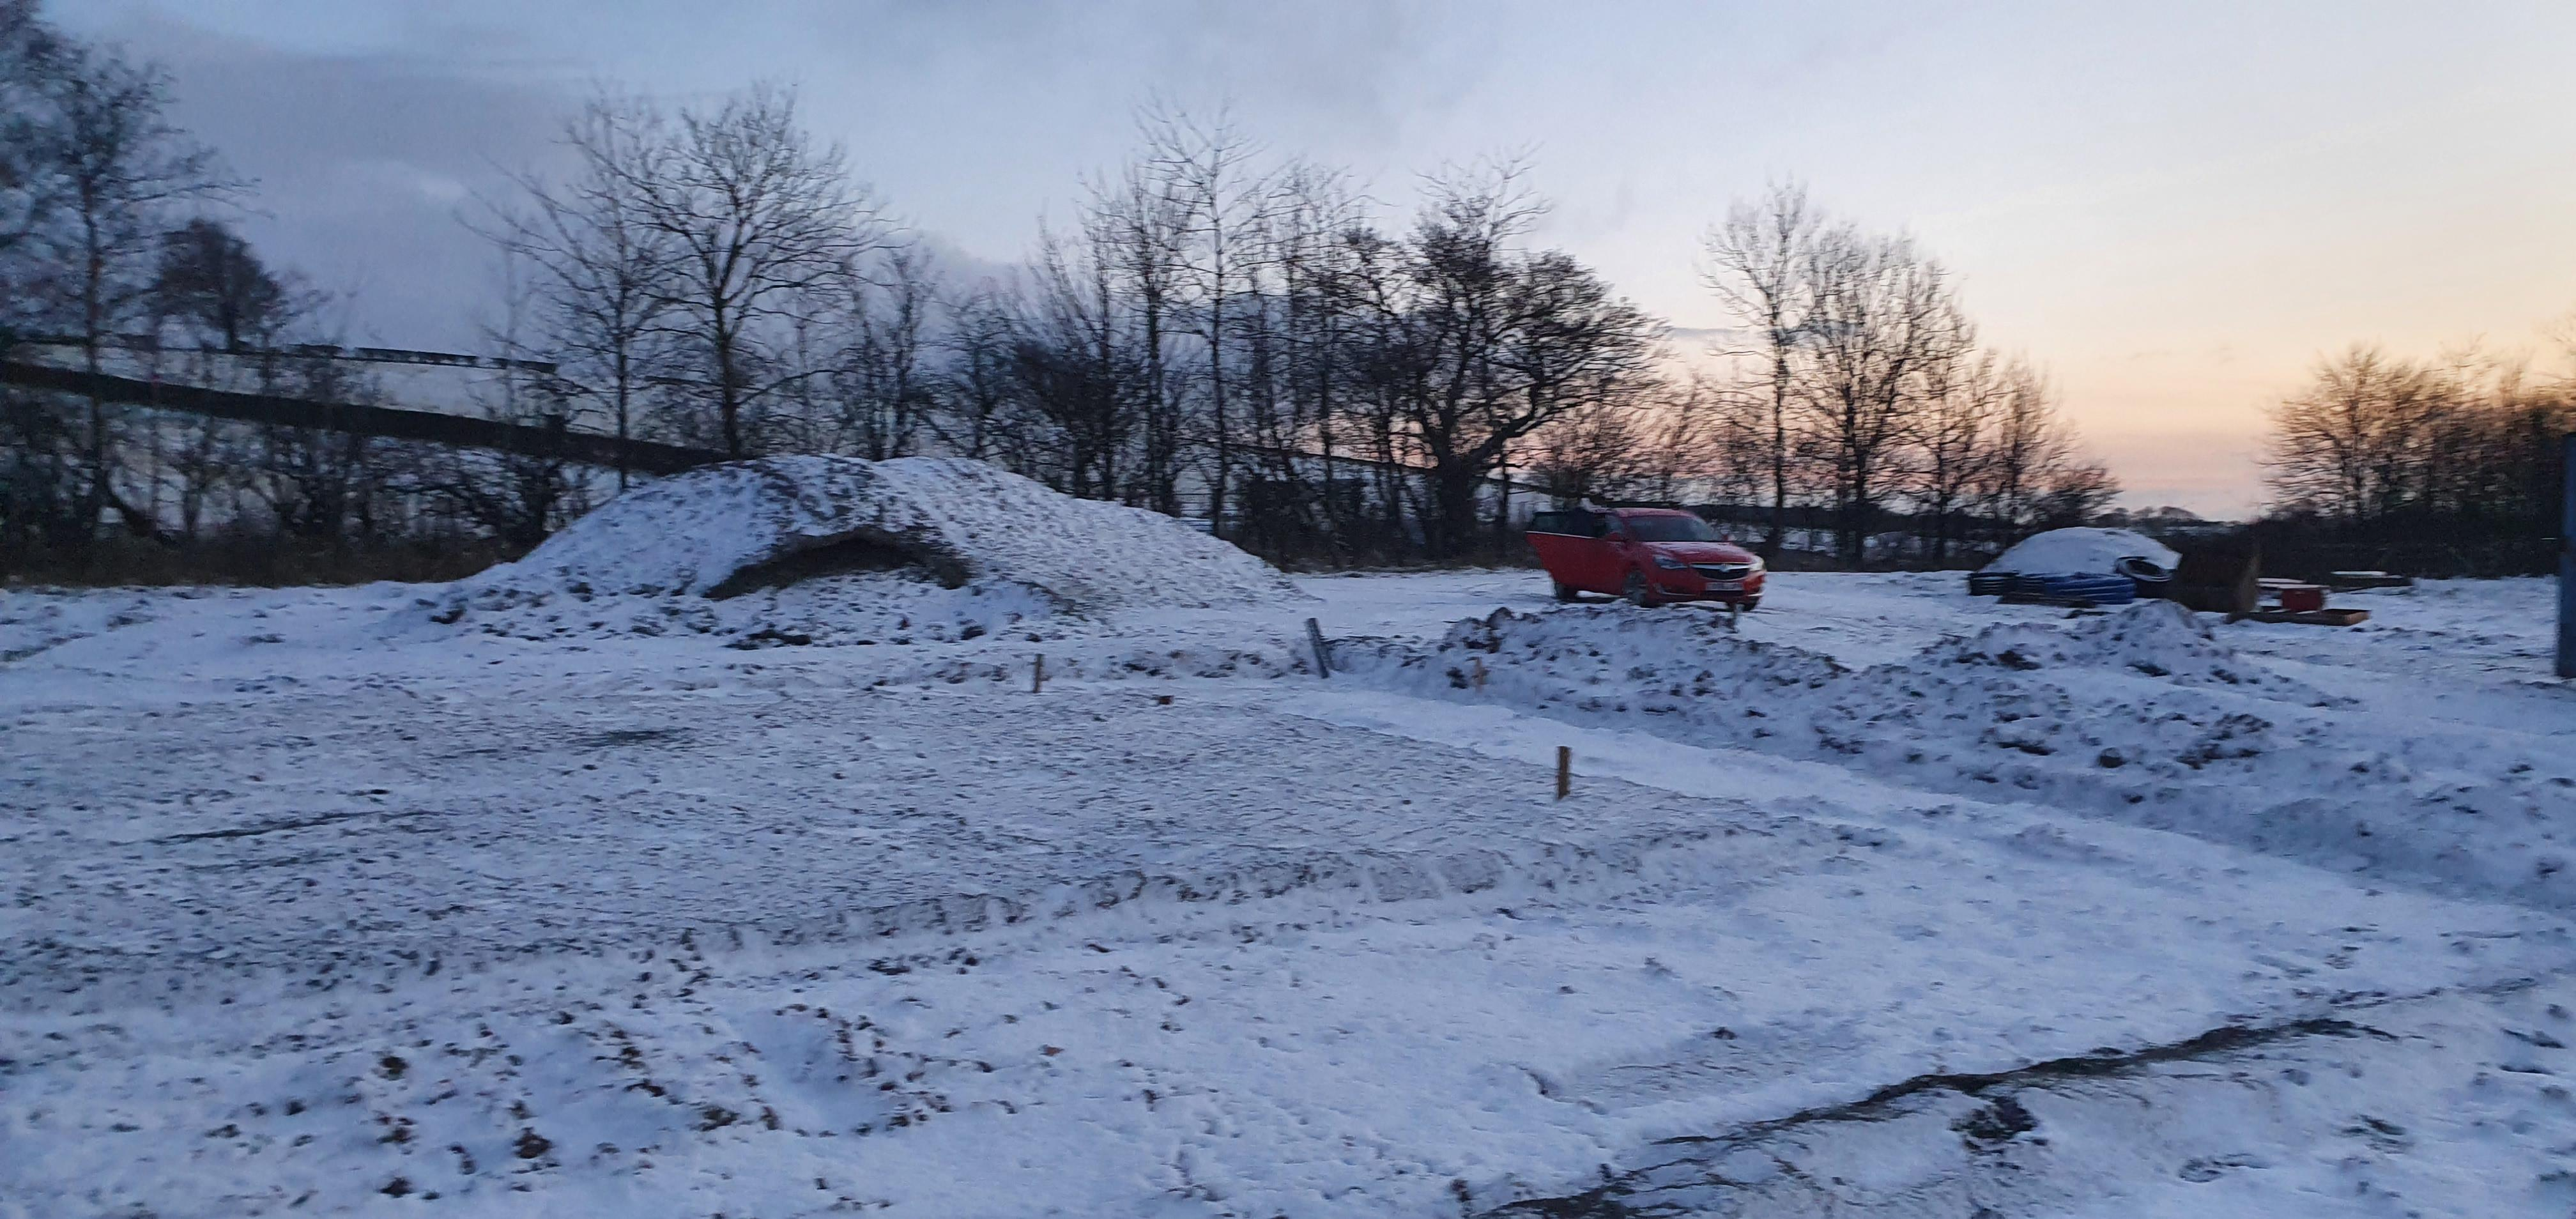 Foundations - Stage 1 - Nothing but Snow and ICE